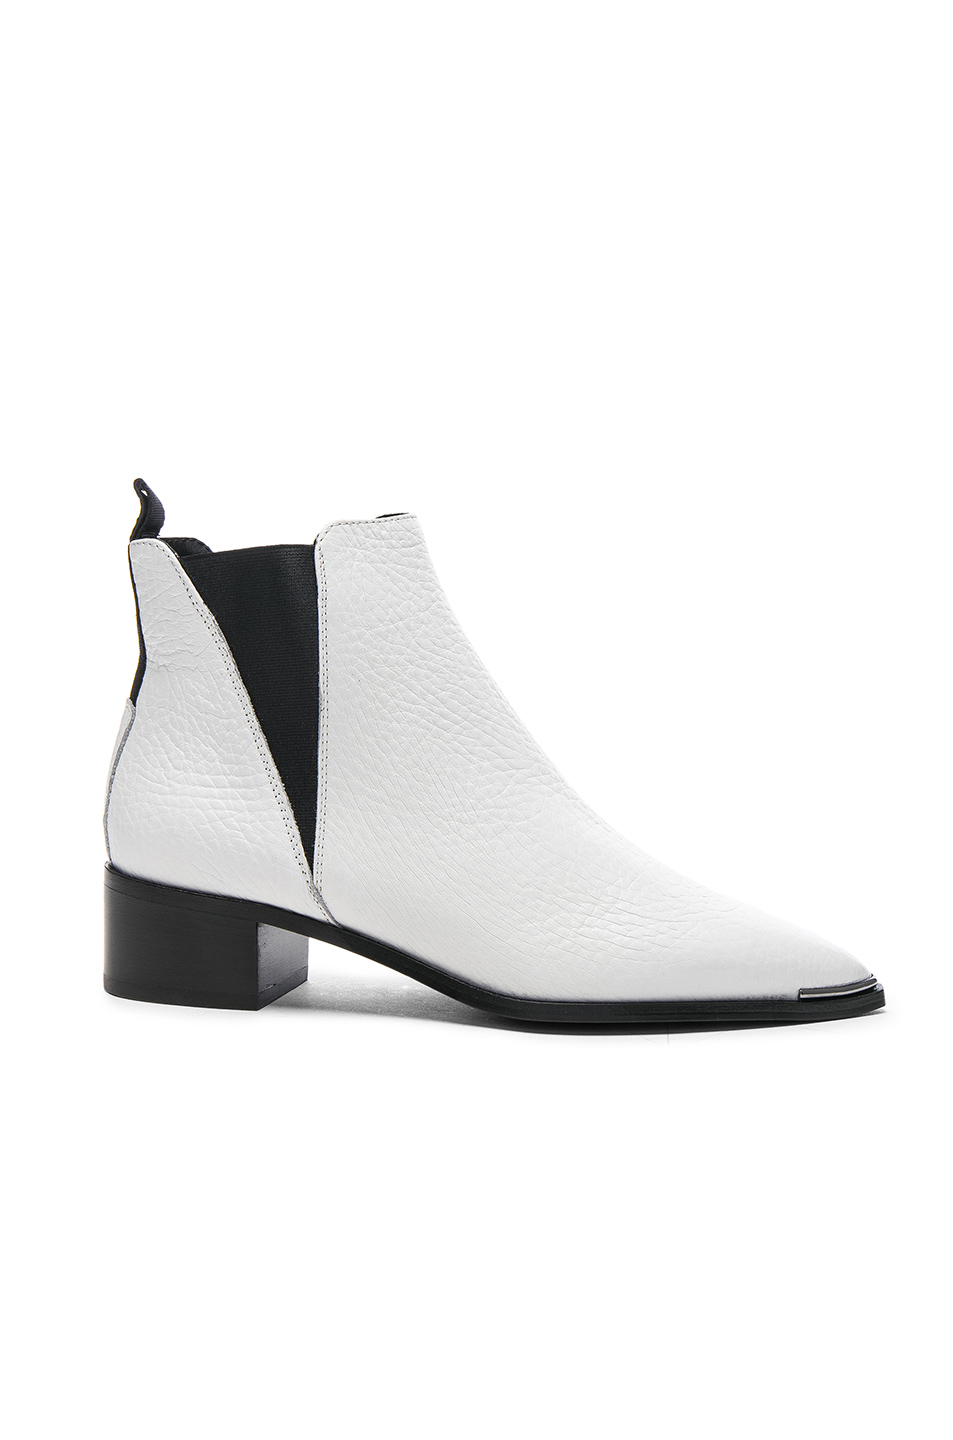 Photo of Acne Studios Grained Leather Jensen Booties in White shop Acne Studios shoes